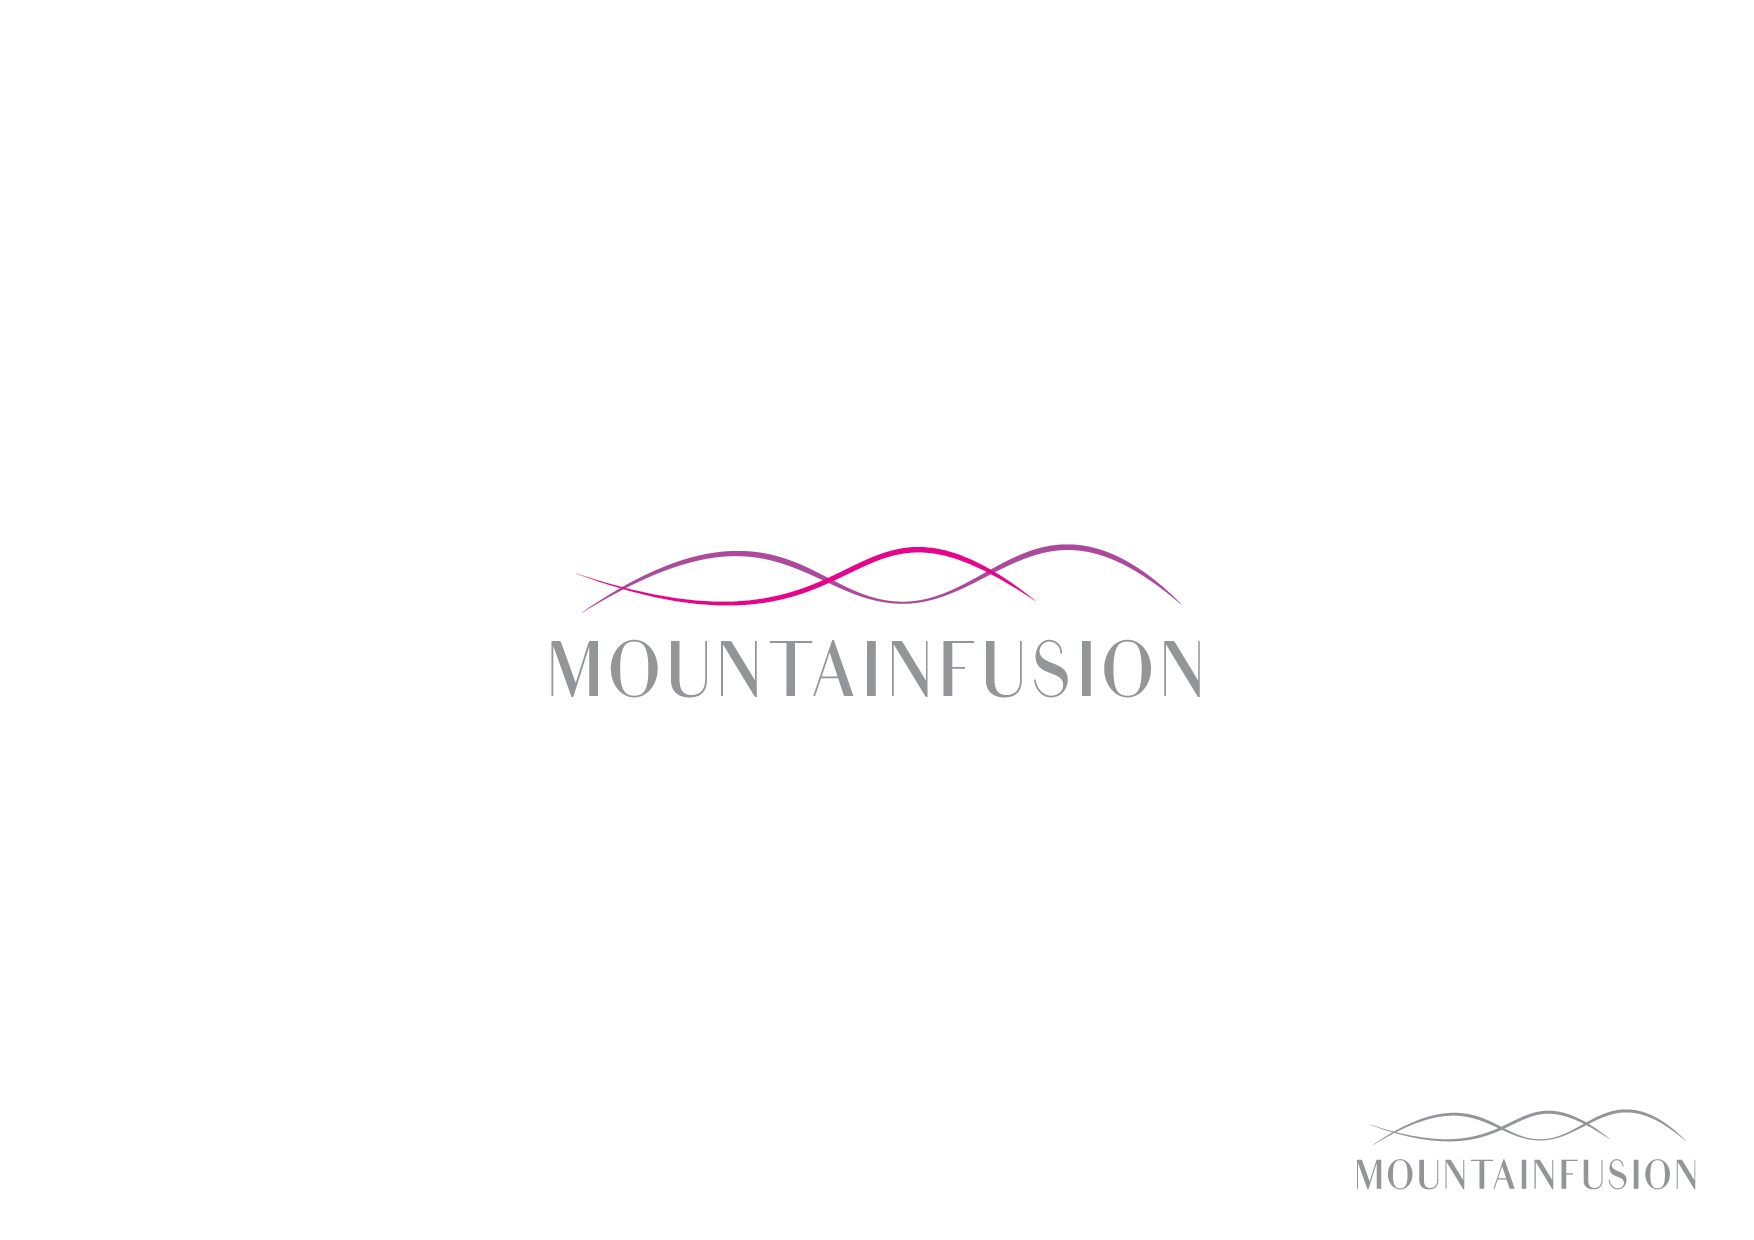 Warm, inviting logo for Mountain Infusion skincare